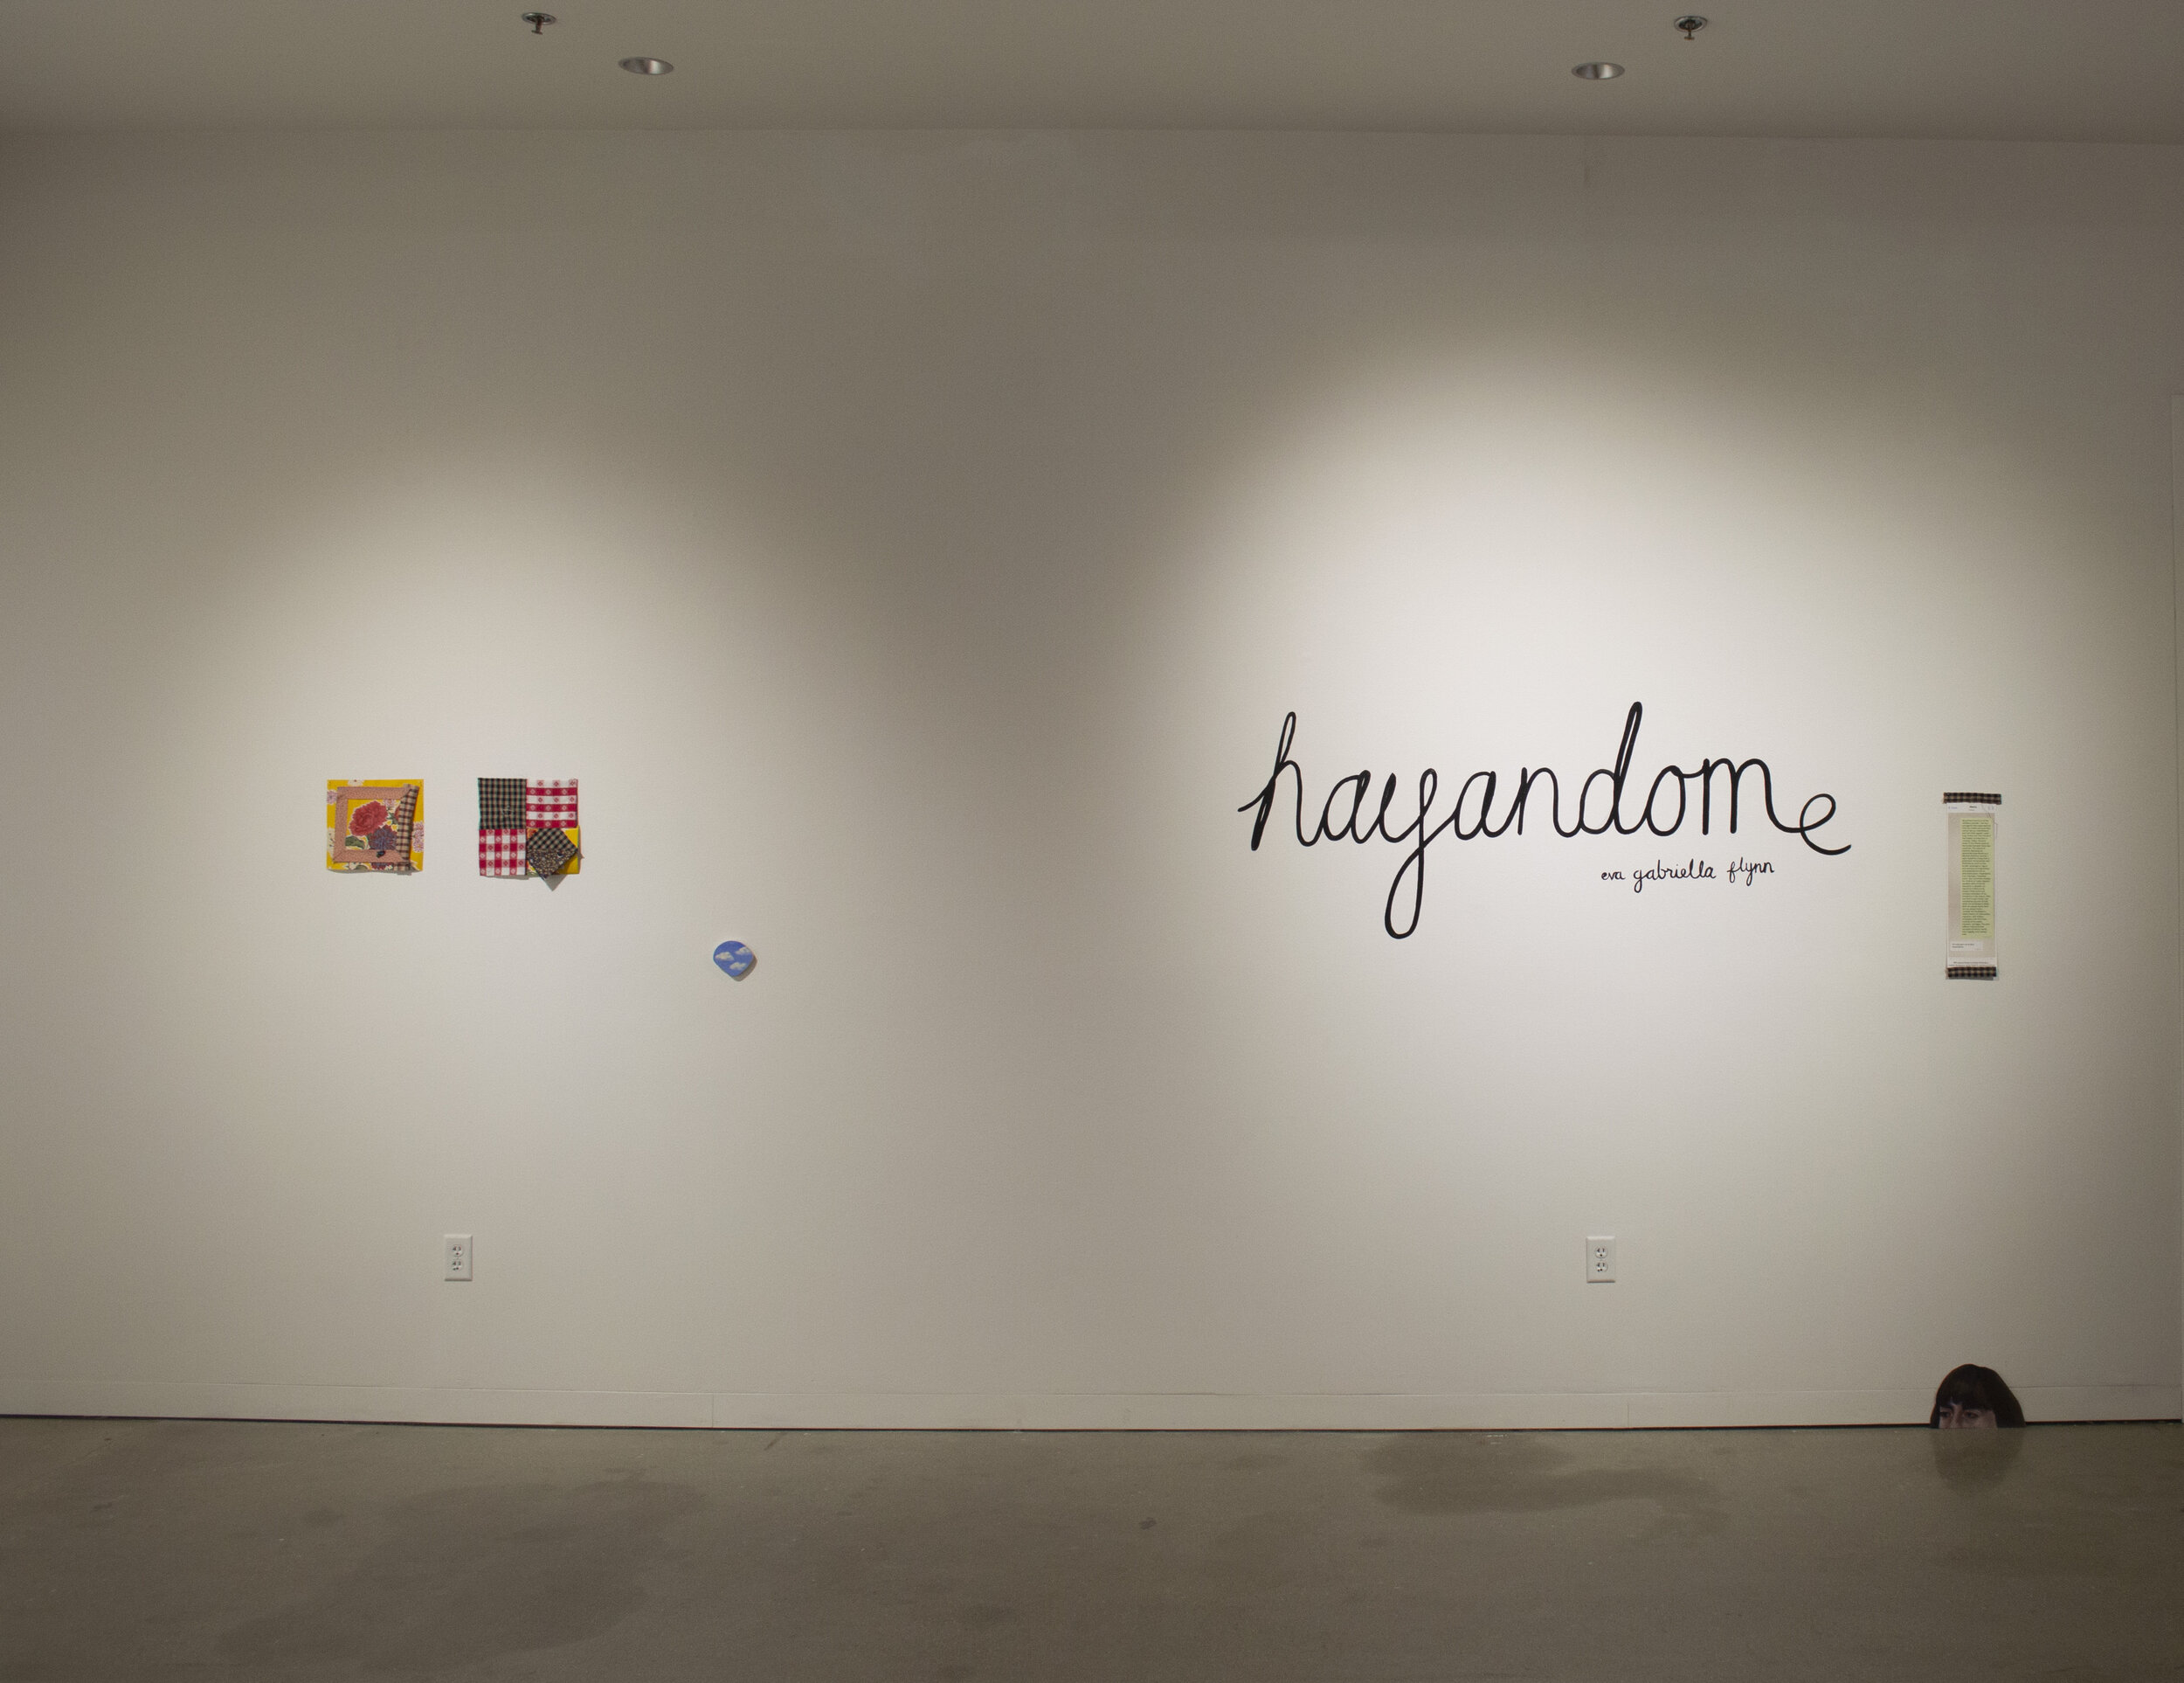 Installation view of hayadome exhibition by Eva Gabriella Flynn